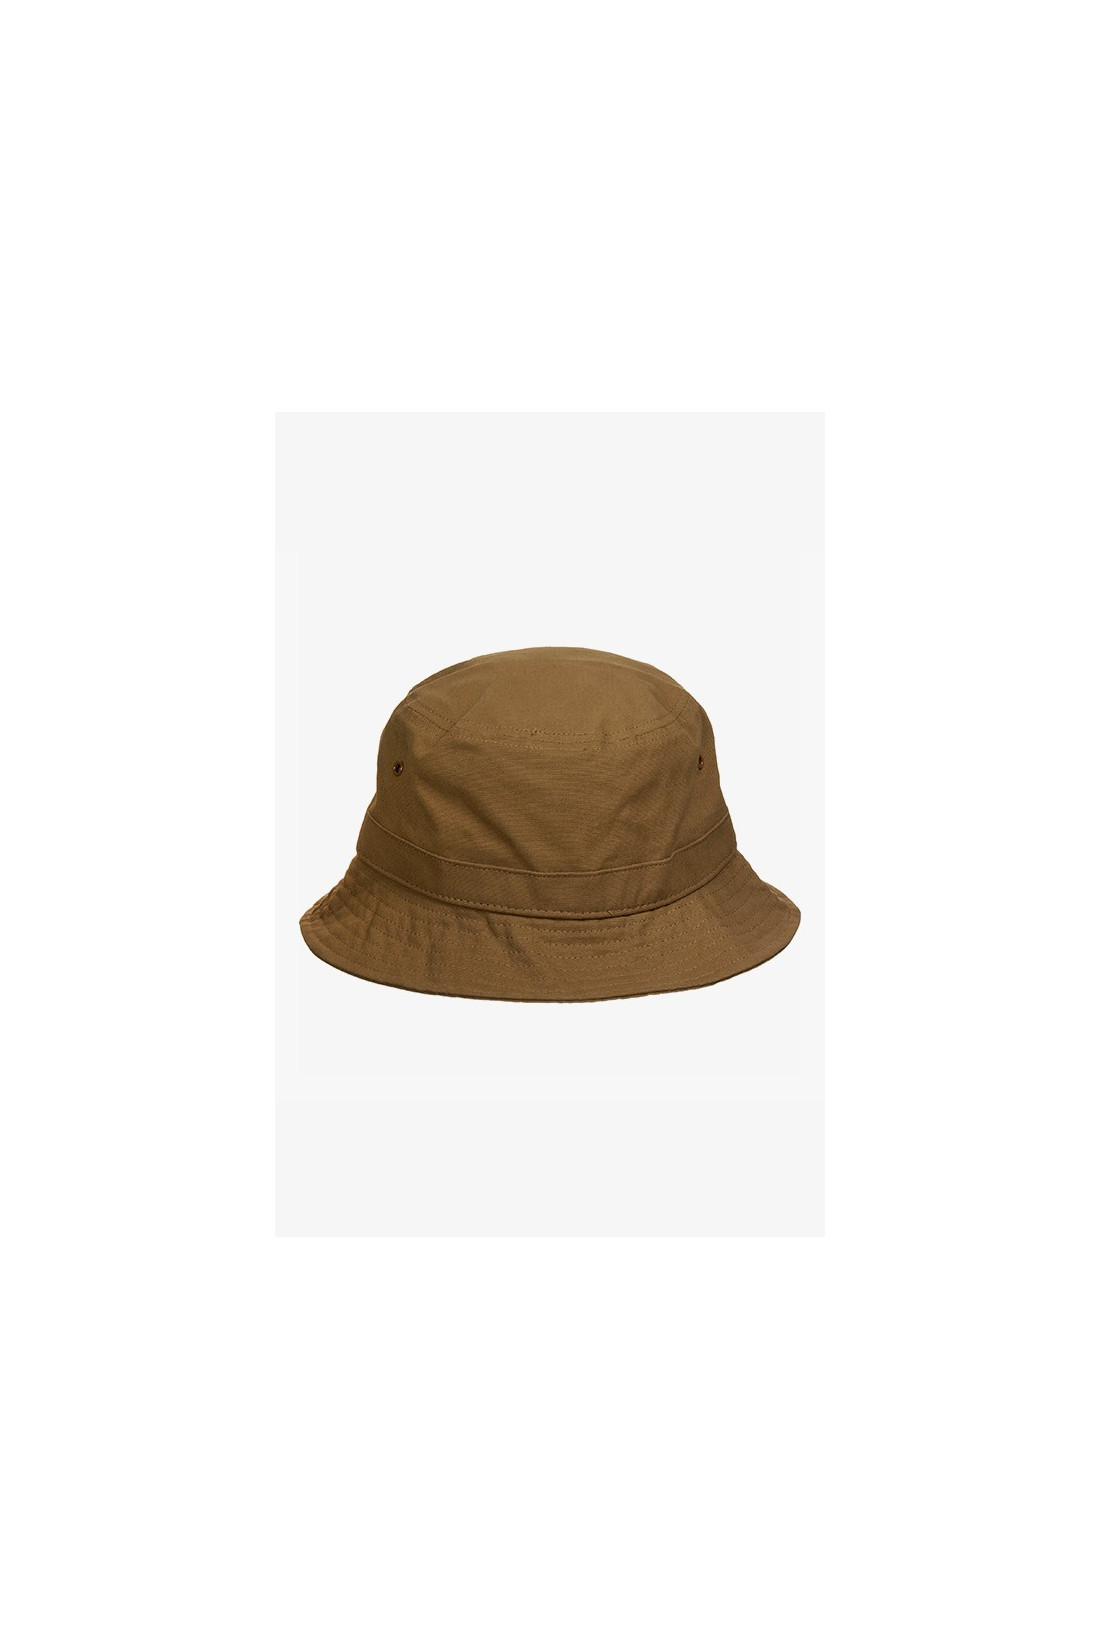 CARHARTT WIP / Script bucket hat Hamilton brown